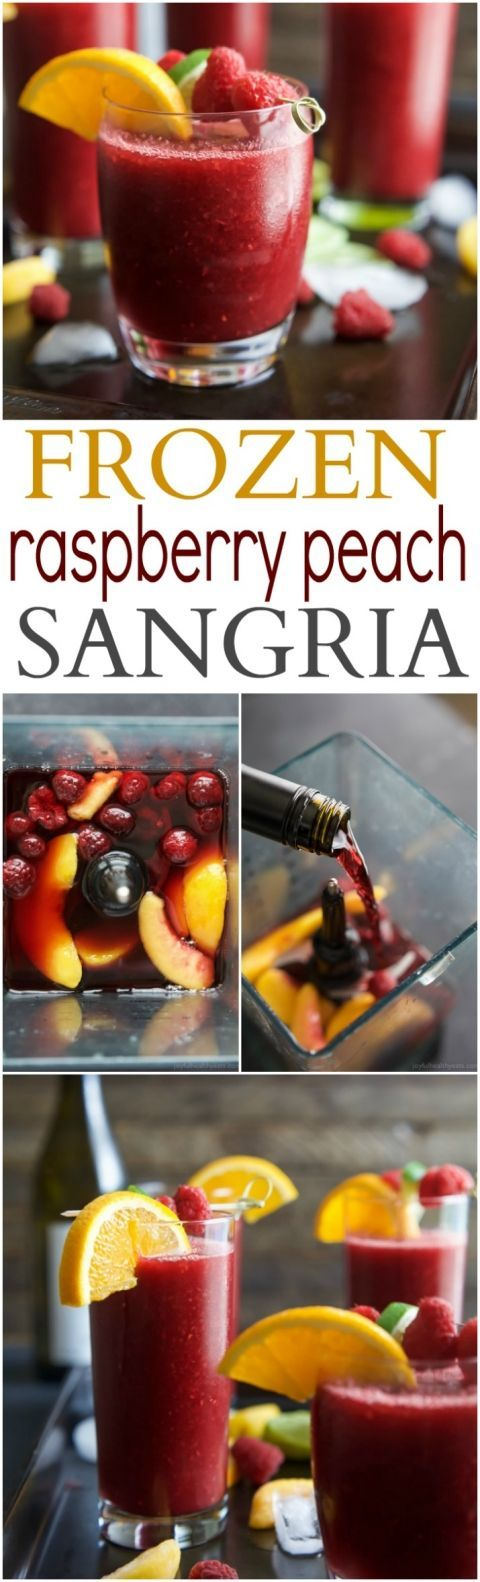 Frozen Raspberry Peach Sangria - a refreshing cocktail to cool you down on those hot summer nights and it only takes 5 minutes to make. A Sangria Recipe that will knock your socks off and it's only 131 calories! | joyfulhealthyeats.com